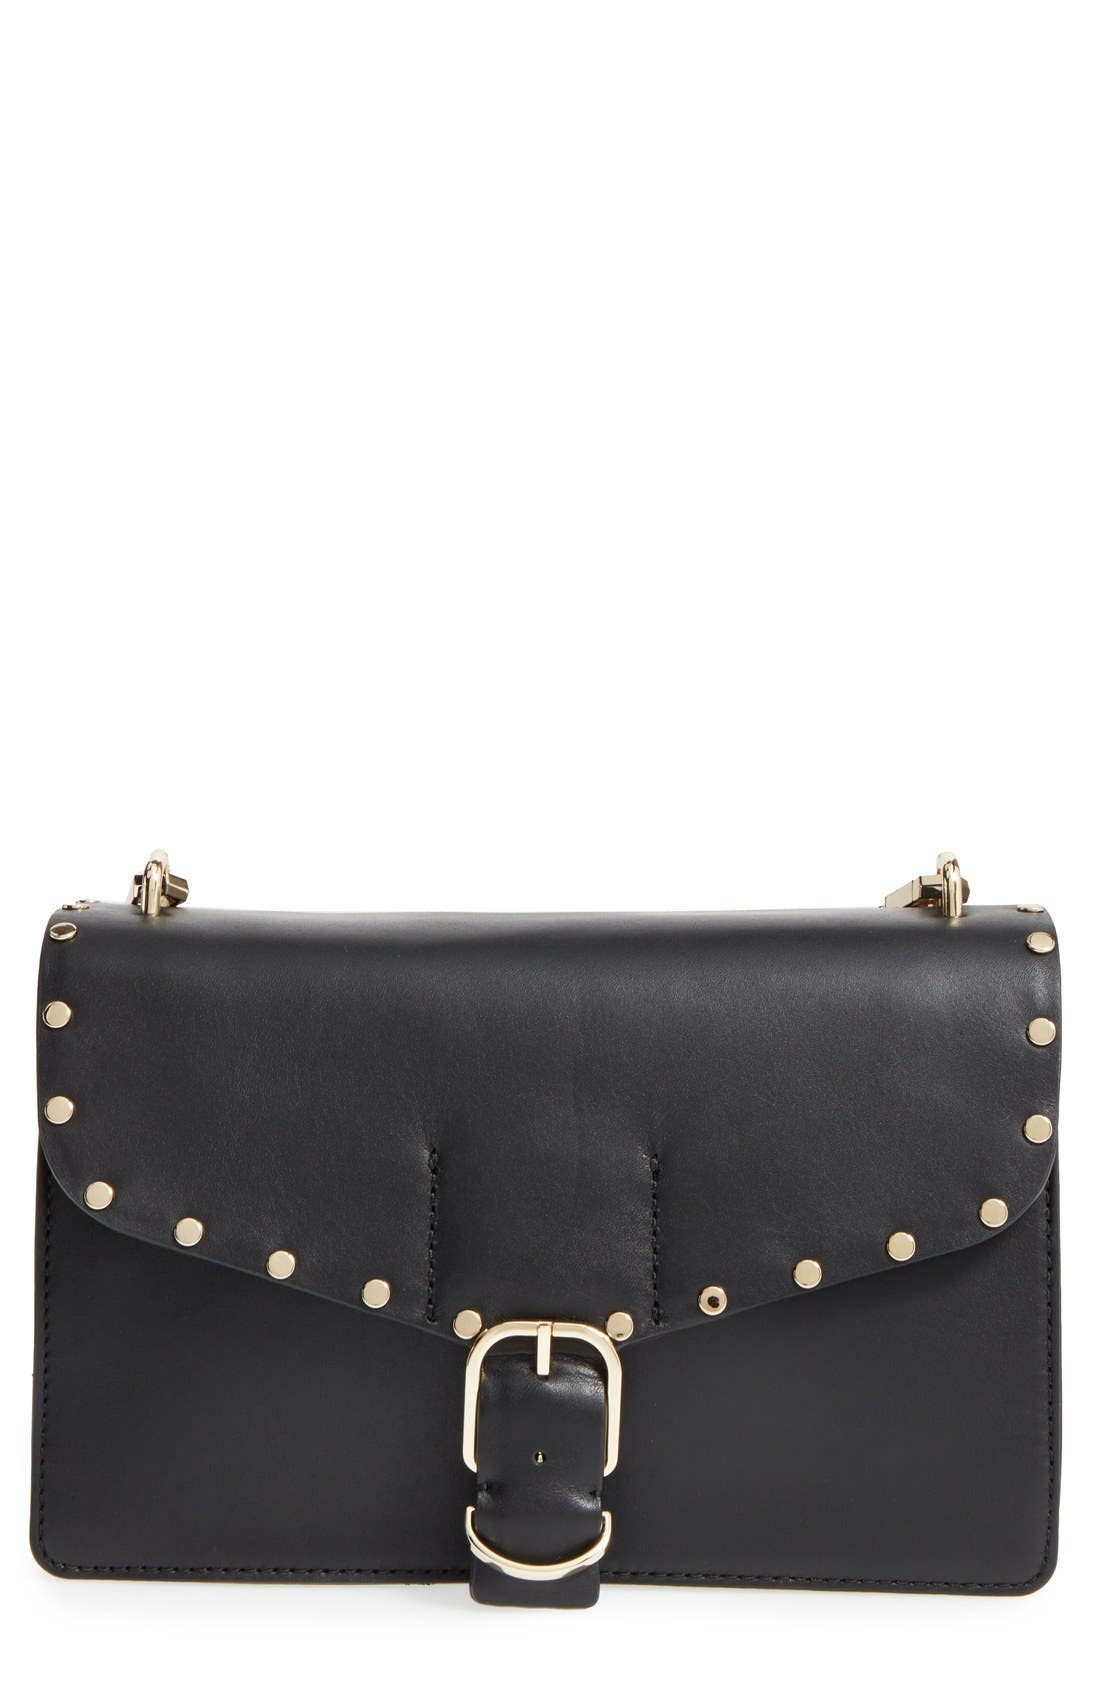 Main Image - Rebecca Minkoff Medium Biker Leather Shoulder Bag